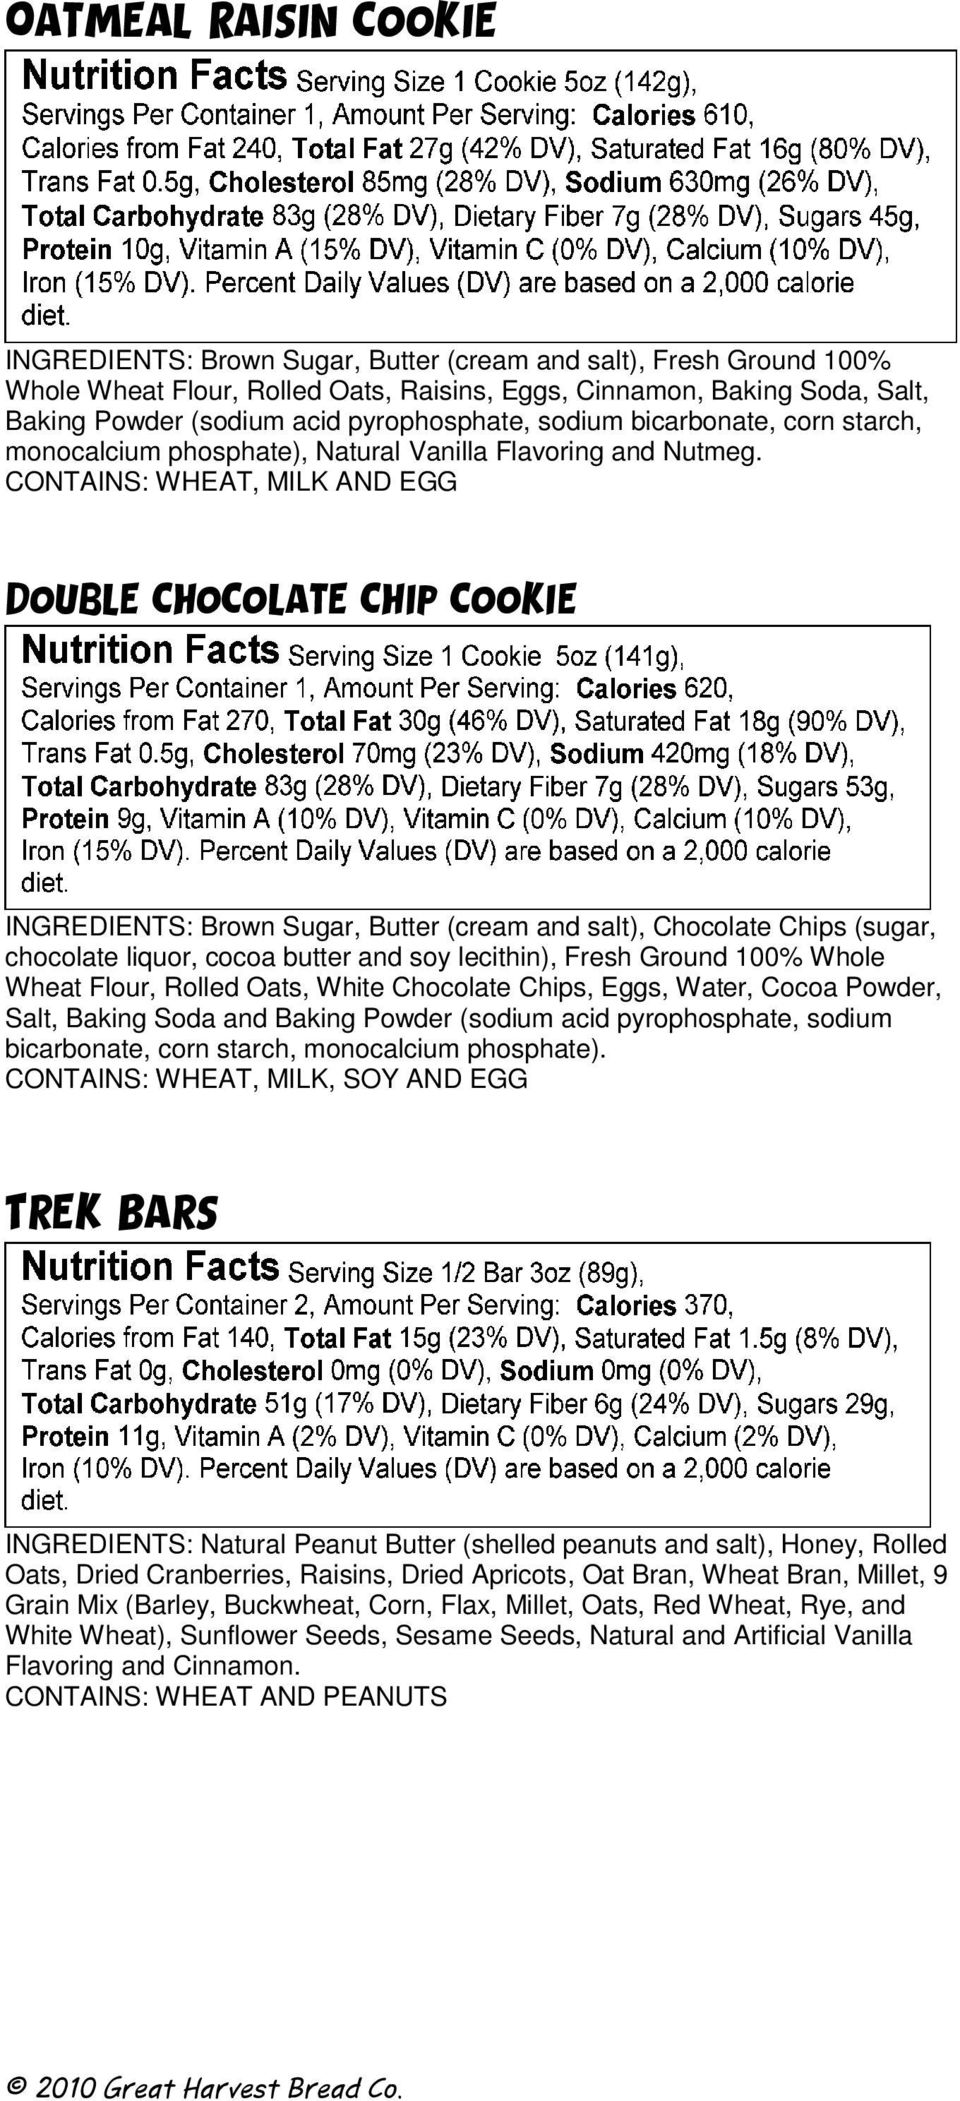 Double chocolate chip cookie INGREDIENTS: Brown Sugar, Butter (cream and salt), Chocolate Chips (sugar, chocolate liquor, cocoa butter and soy lecithin), Fresh Ground 100% Whole Wheat Flour, Rolled